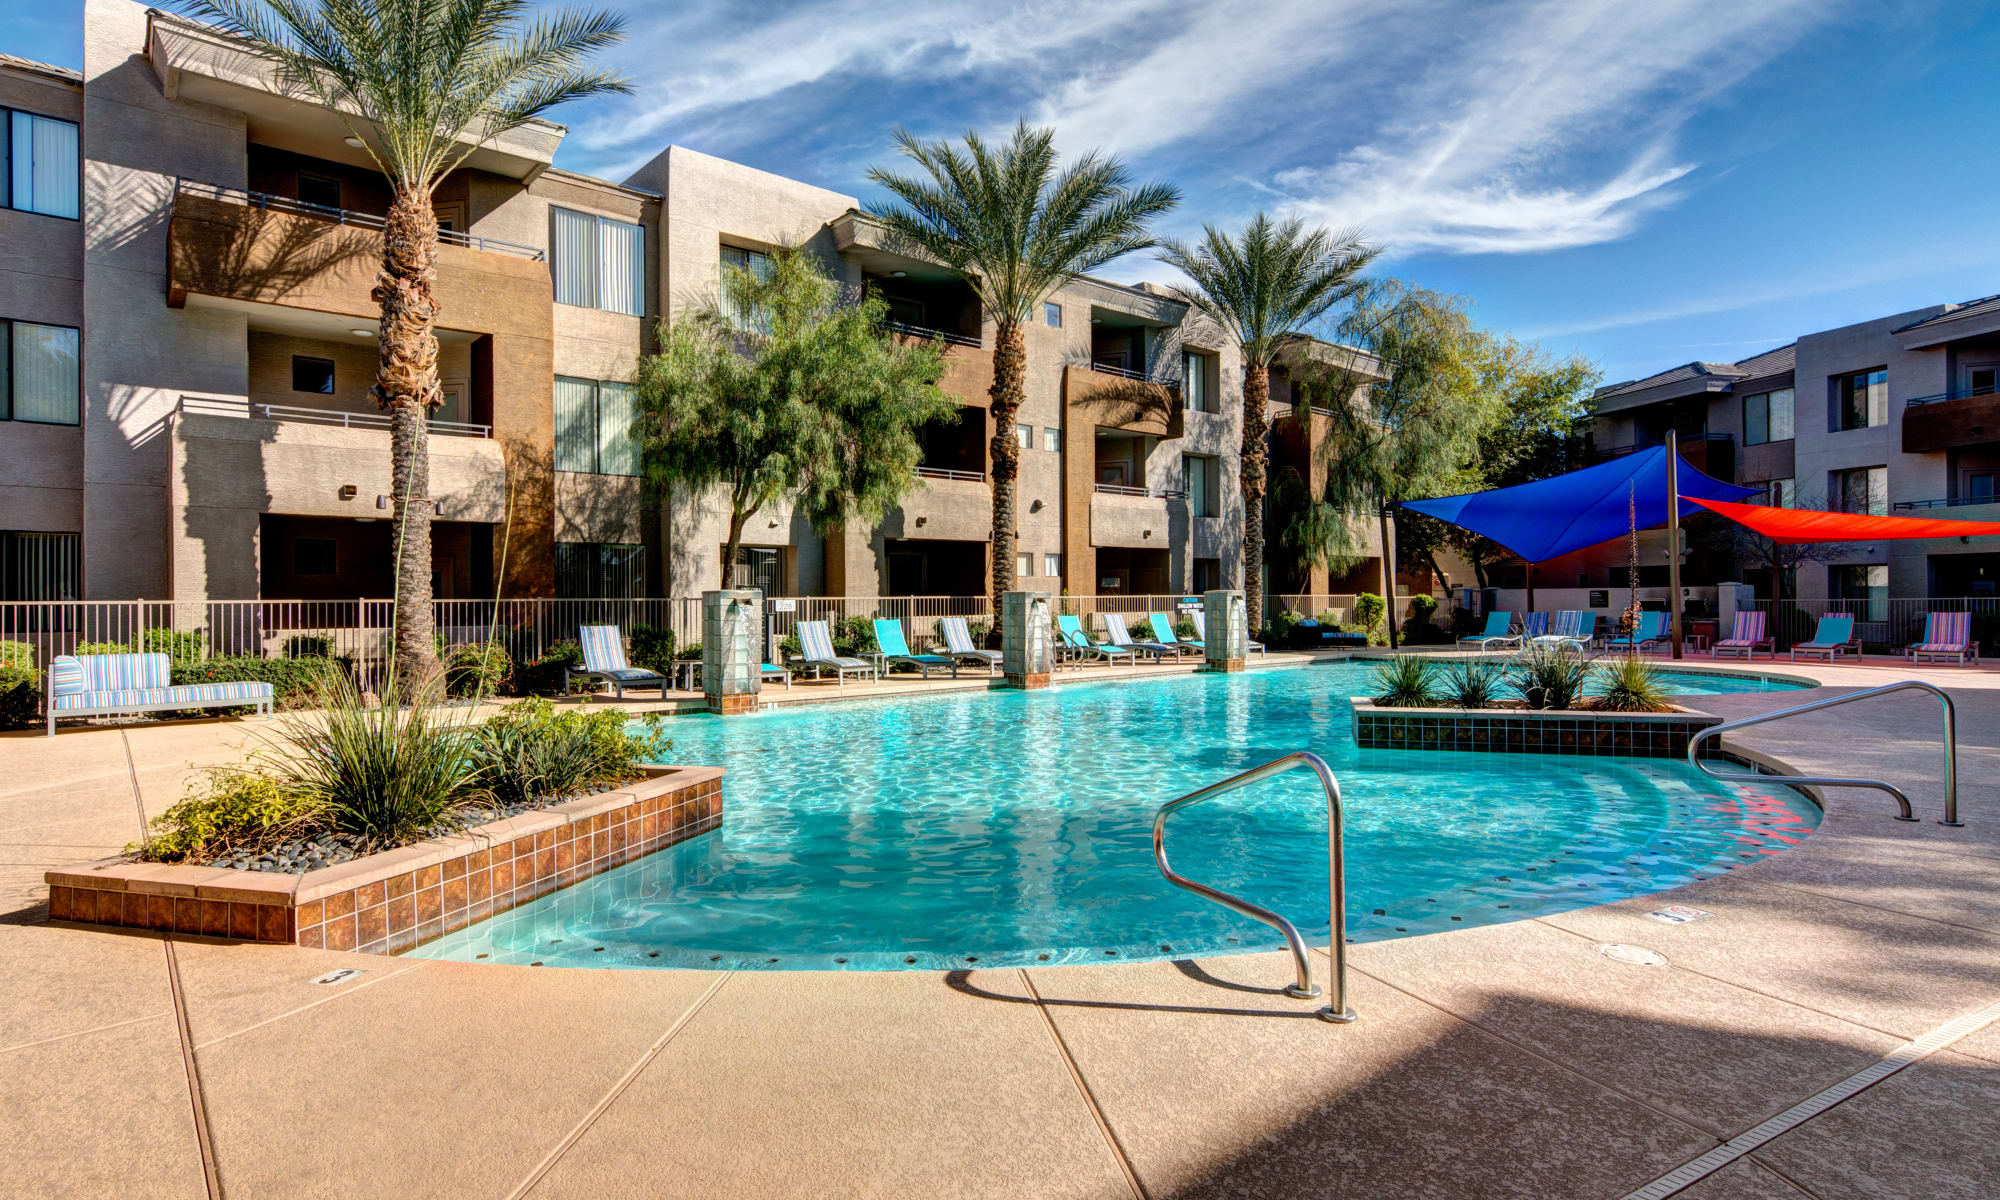 Beautiful resort style pool at Spectra on 7th South in Phoenix, Arizona